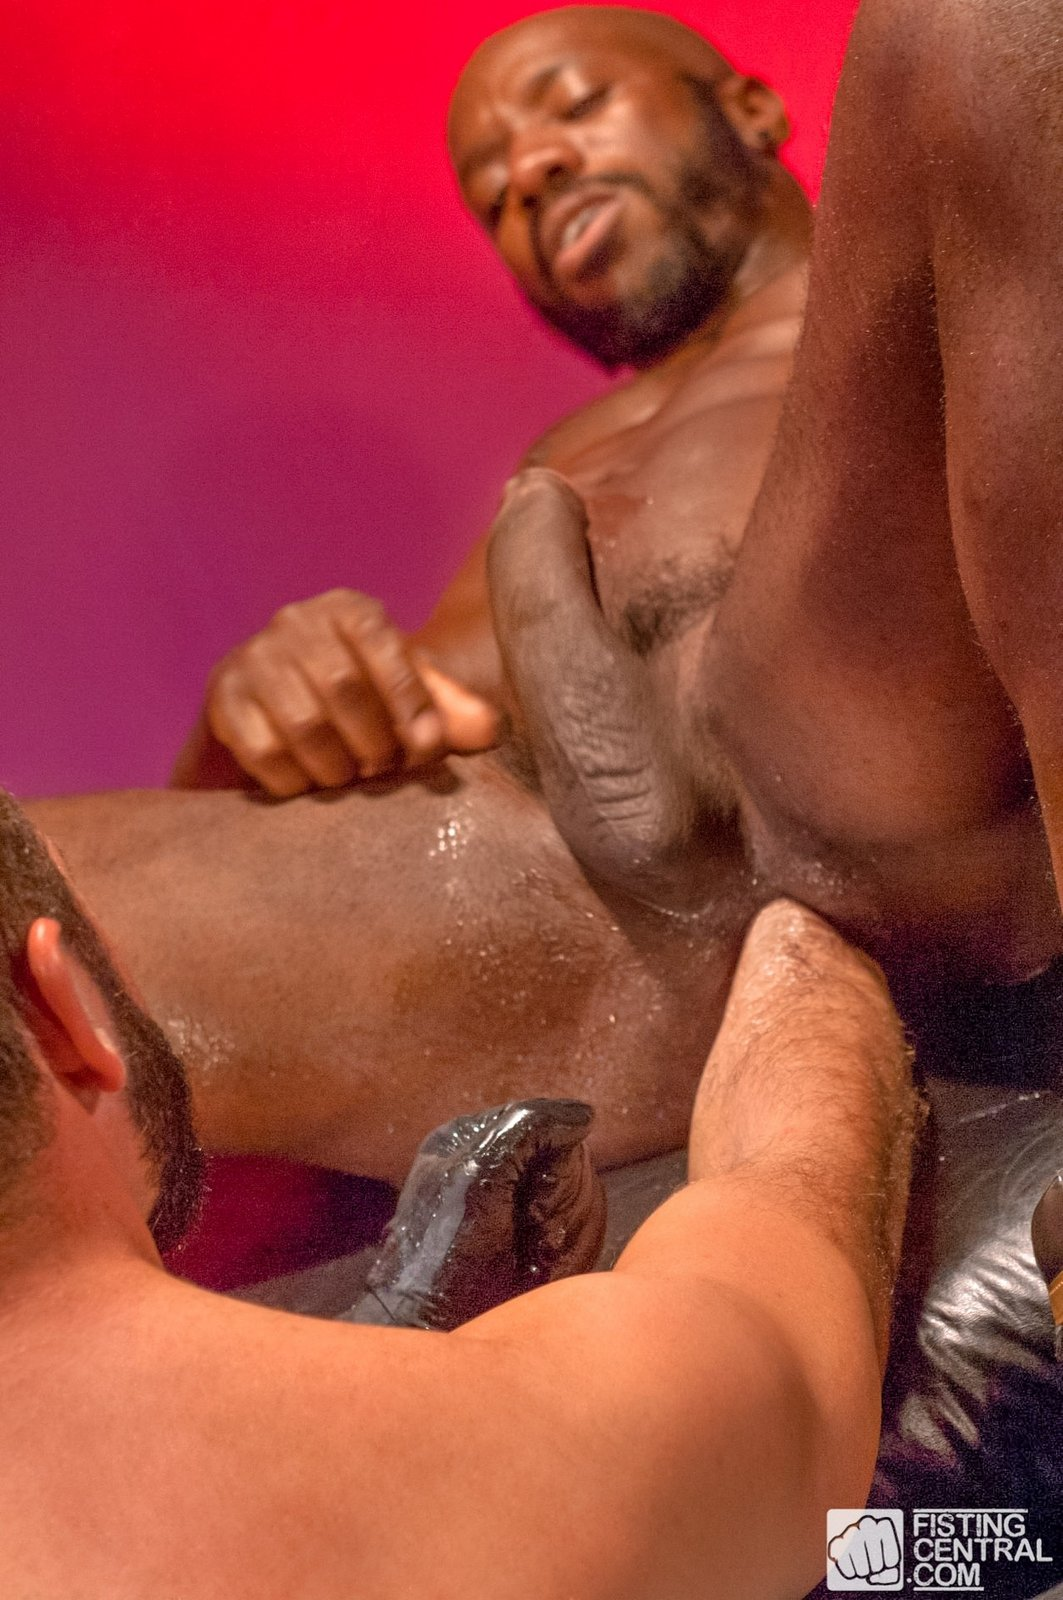 nude-free-gay-interracial-fisting-pictures-open-hymen-pussy